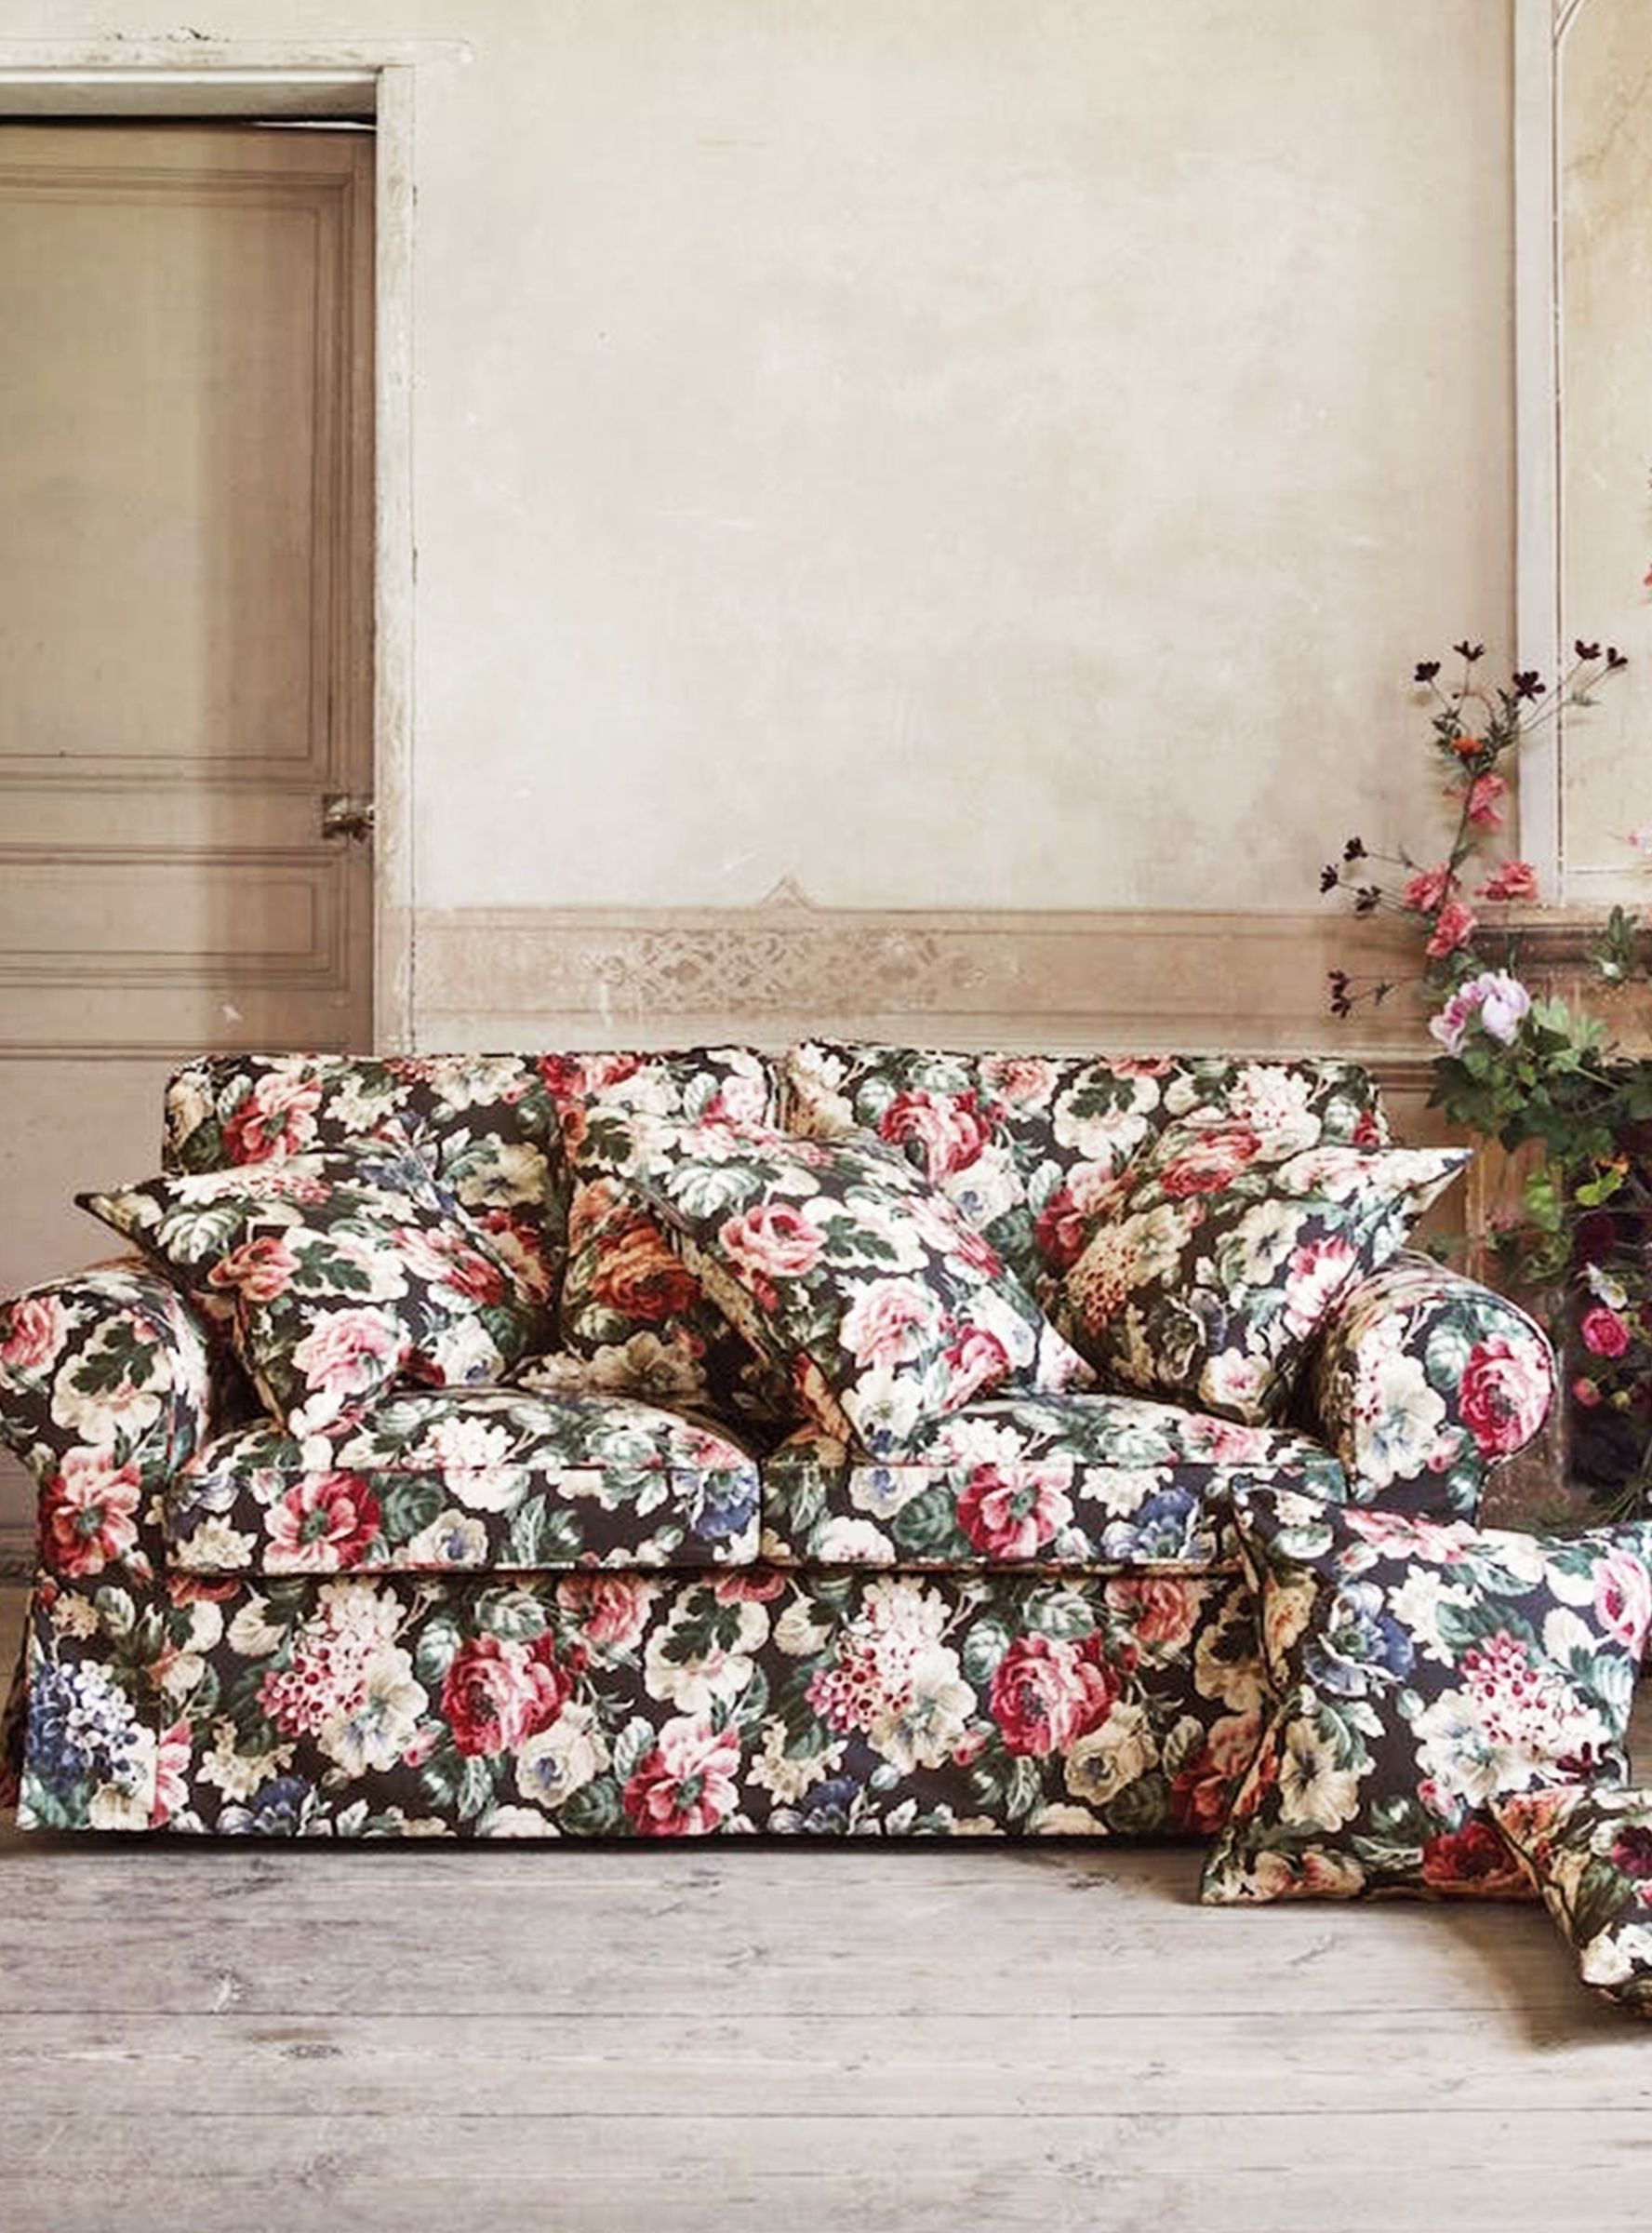 Ikea S Drastically Different New Look Will Make Your Apartment Way More Grown Up Floral Sofa Ikea Floral Couch